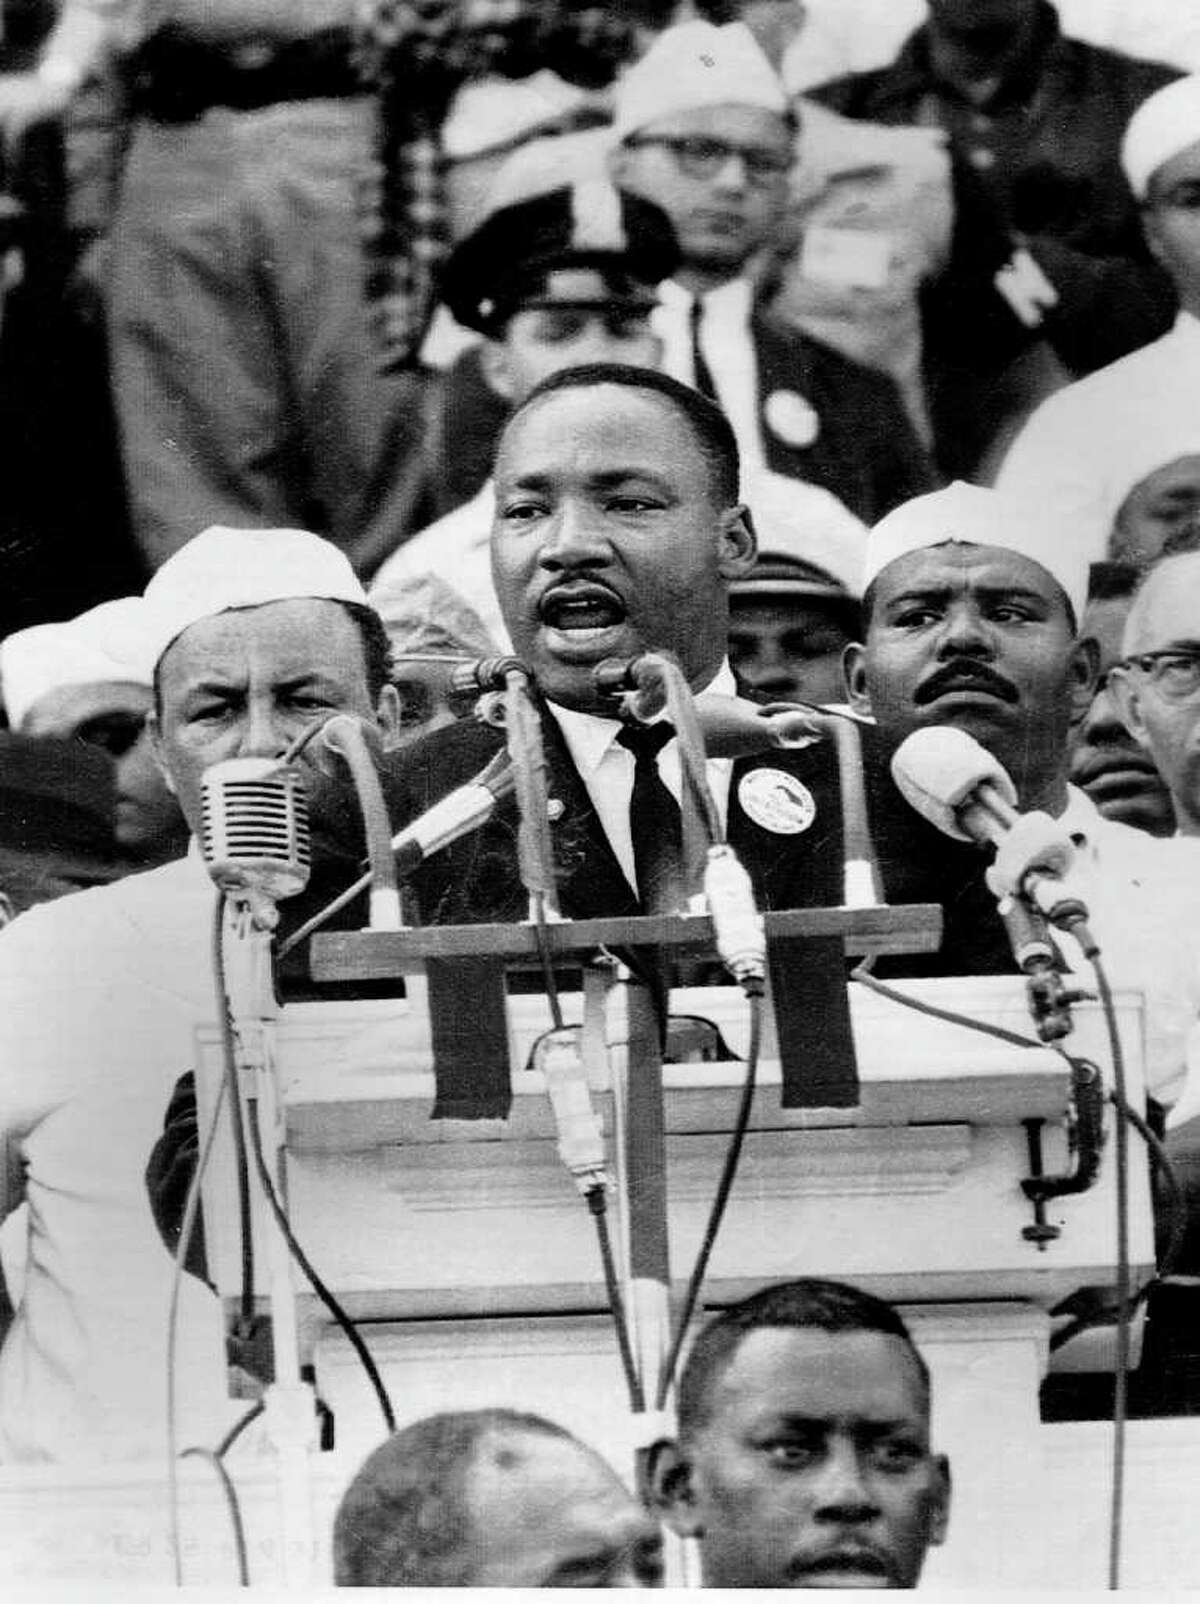 Martin Luther King, Jr. delivers his famous speech on the steps of the Lincoln Memorial in Washington on August 28, 1963. King told the crowd of 200,000 people,